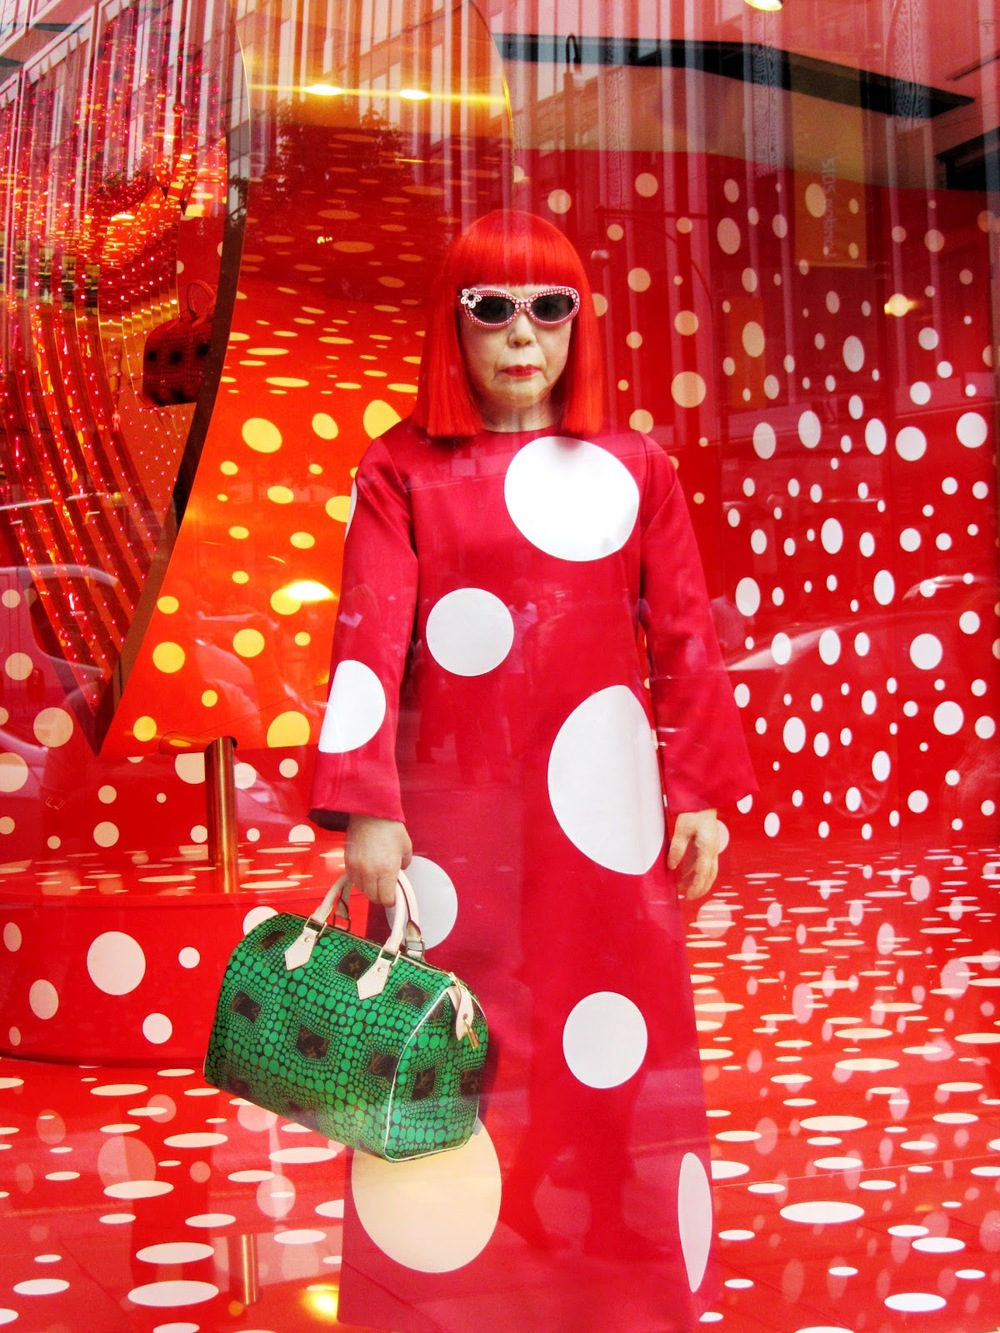 2 Louis Vuitton and Yayoi Kusama's very dotty collaboration 4.jpg